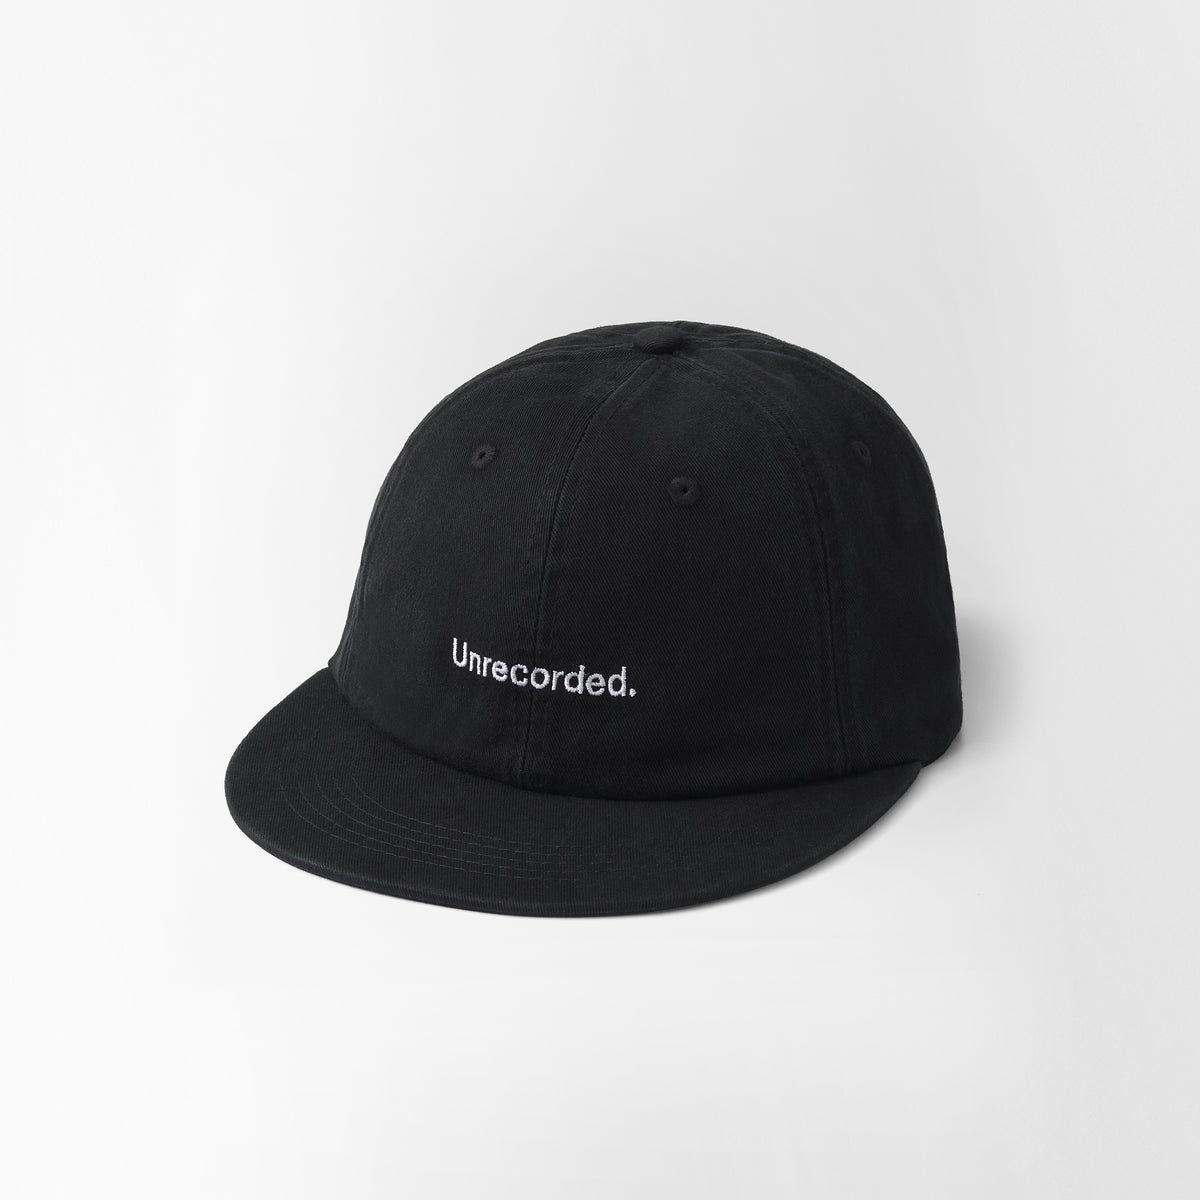 Cap Black flat visor - Unrecorded